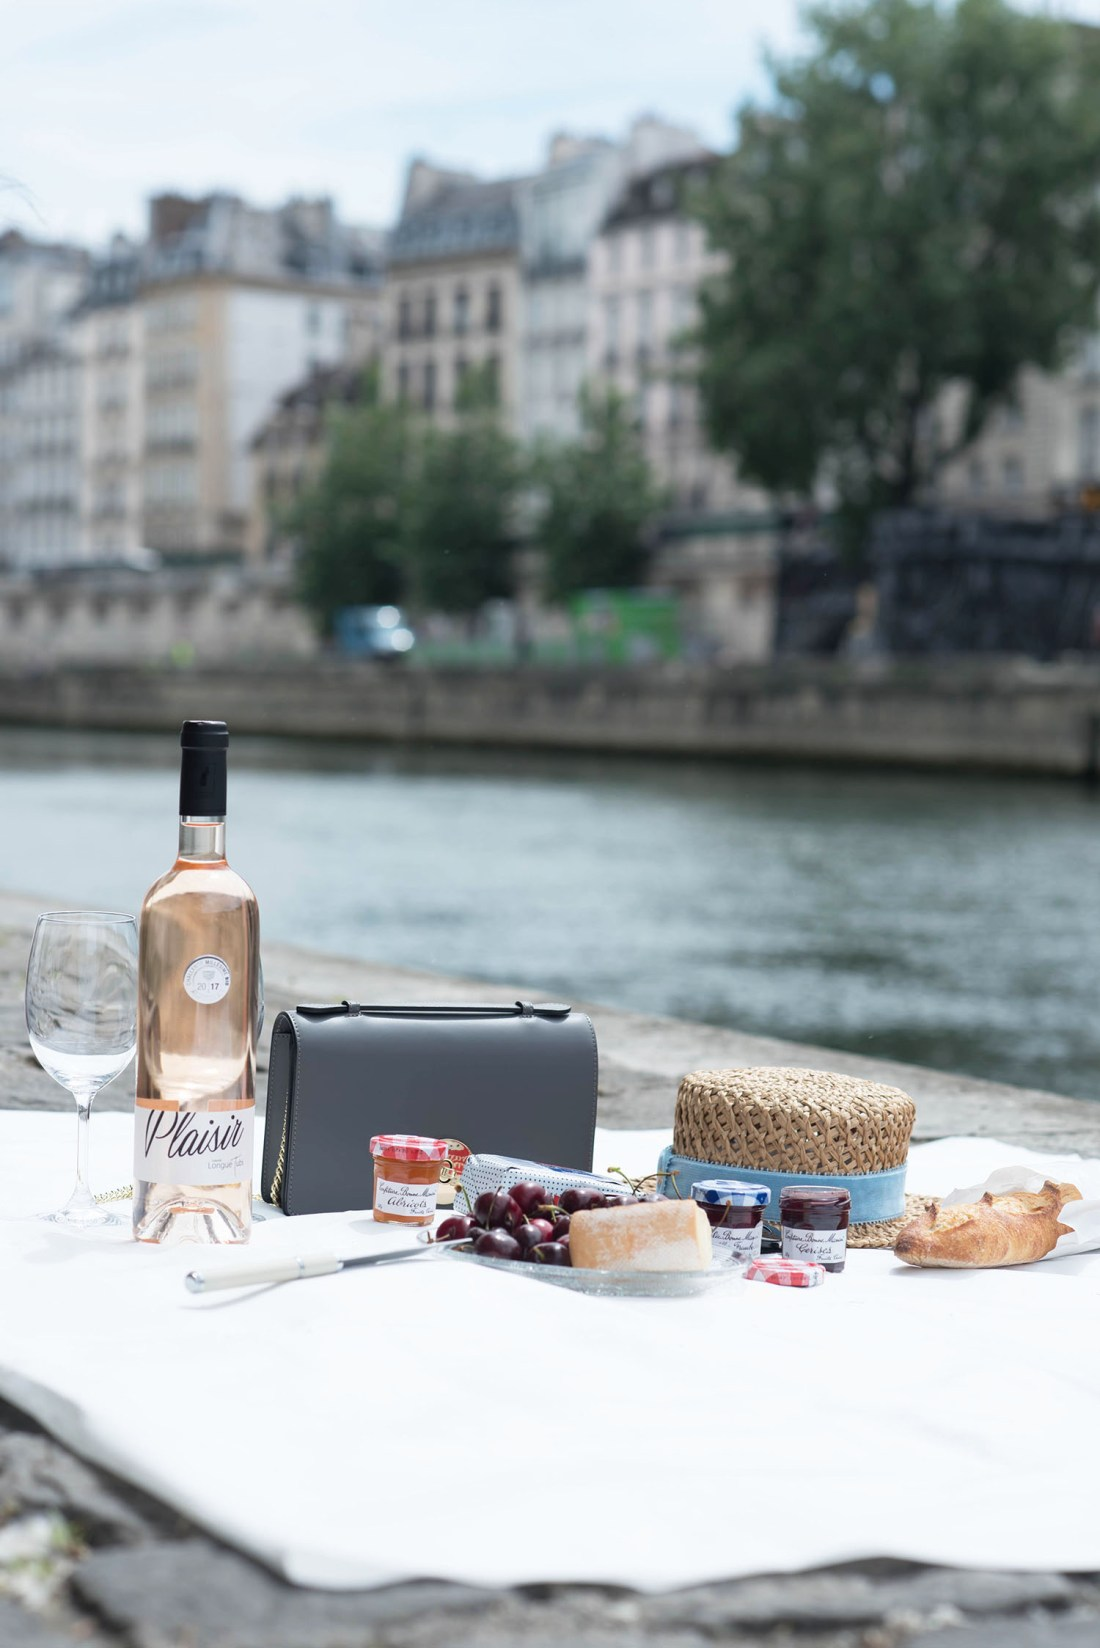 A Bastille Day picnic in Paris, hosted by fashion blogger Cee Fardoe of Coco & Vera